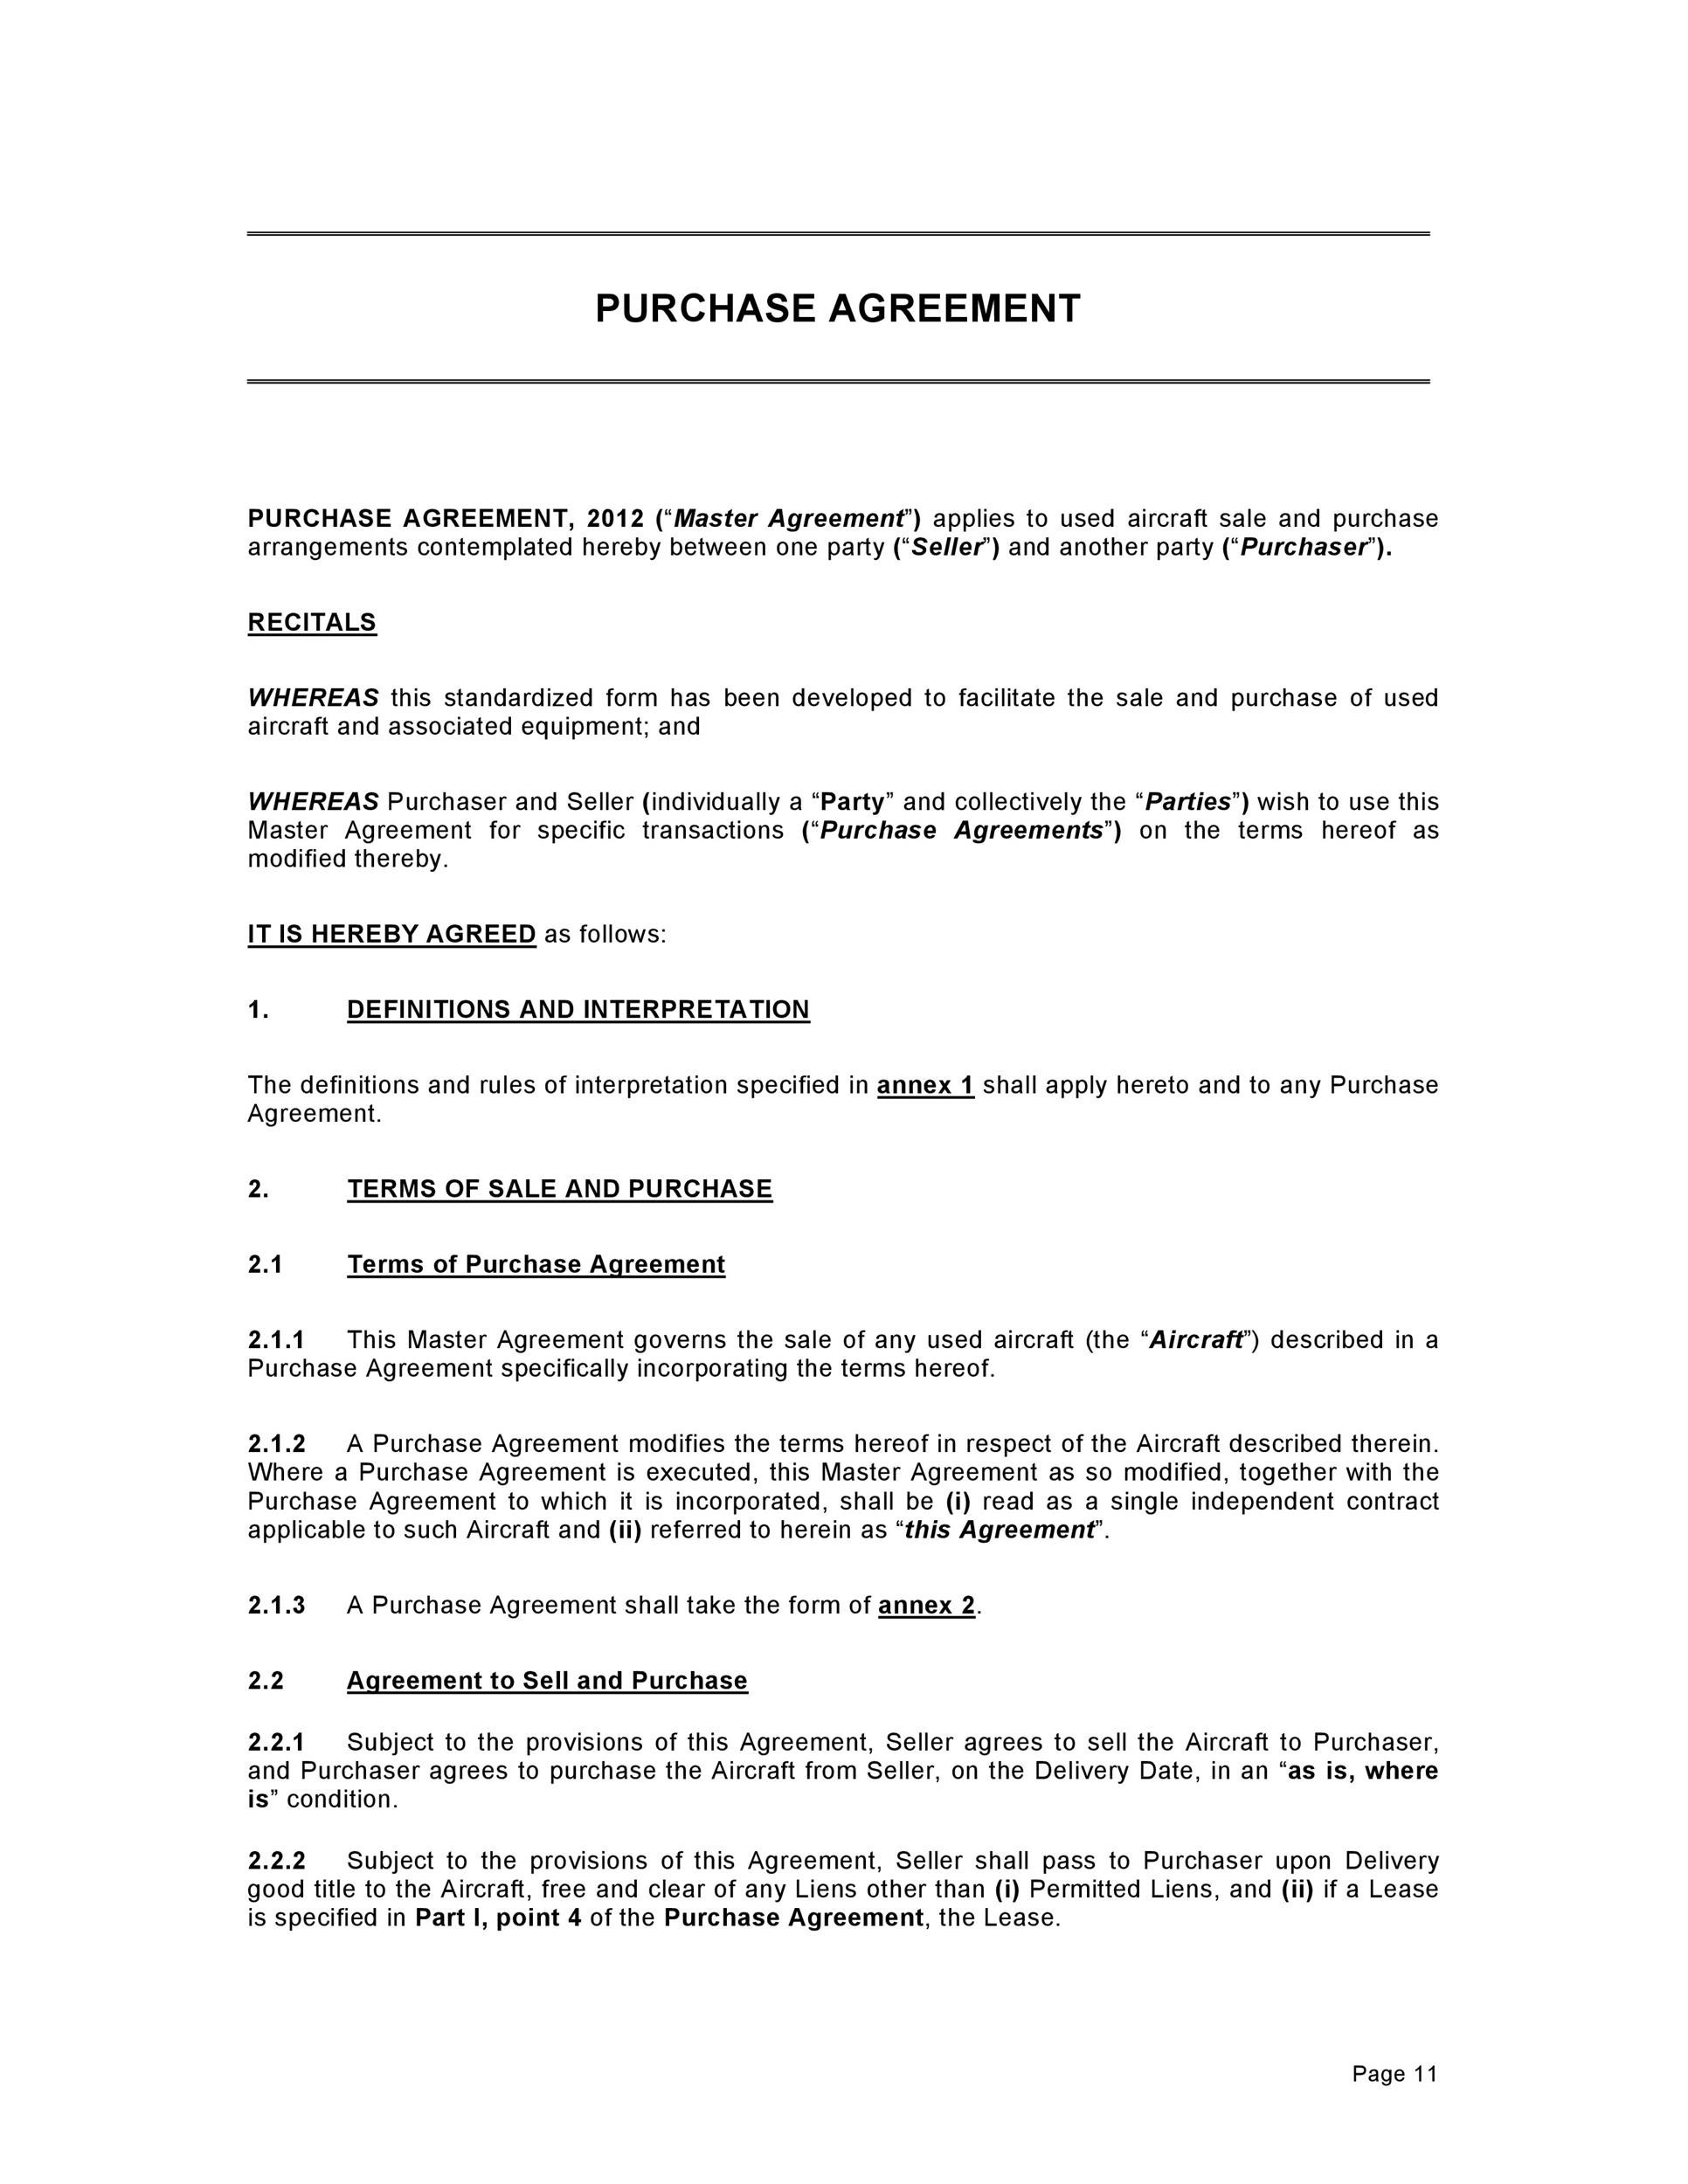 37 simple purchase agreement templates real estate business free purchase agreement template 11 accmission